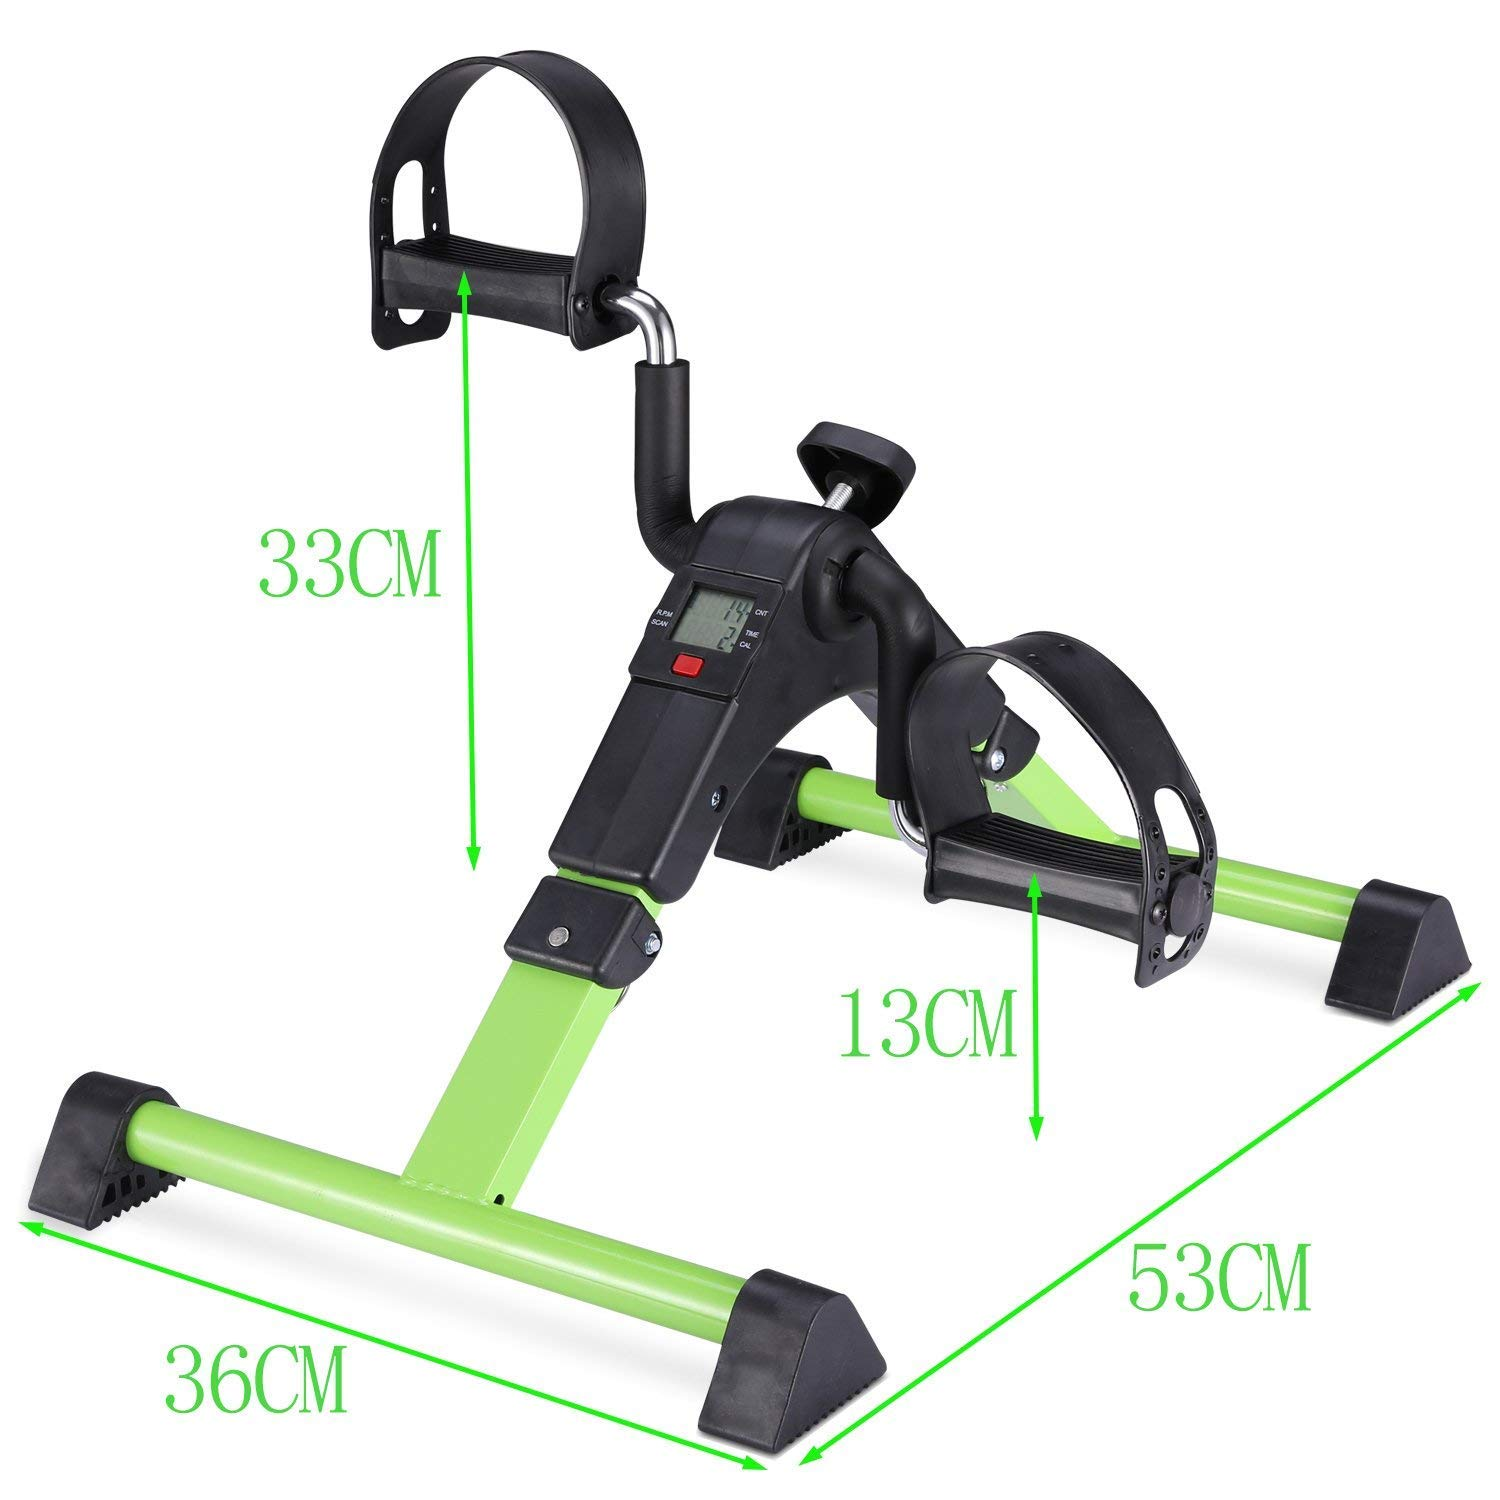 MOMODA Stationary Cycle Pedal Exerciser Desk Exercise Bike with LCD Monitor Foldable (Black/Green) by MOMODA (Image #4)